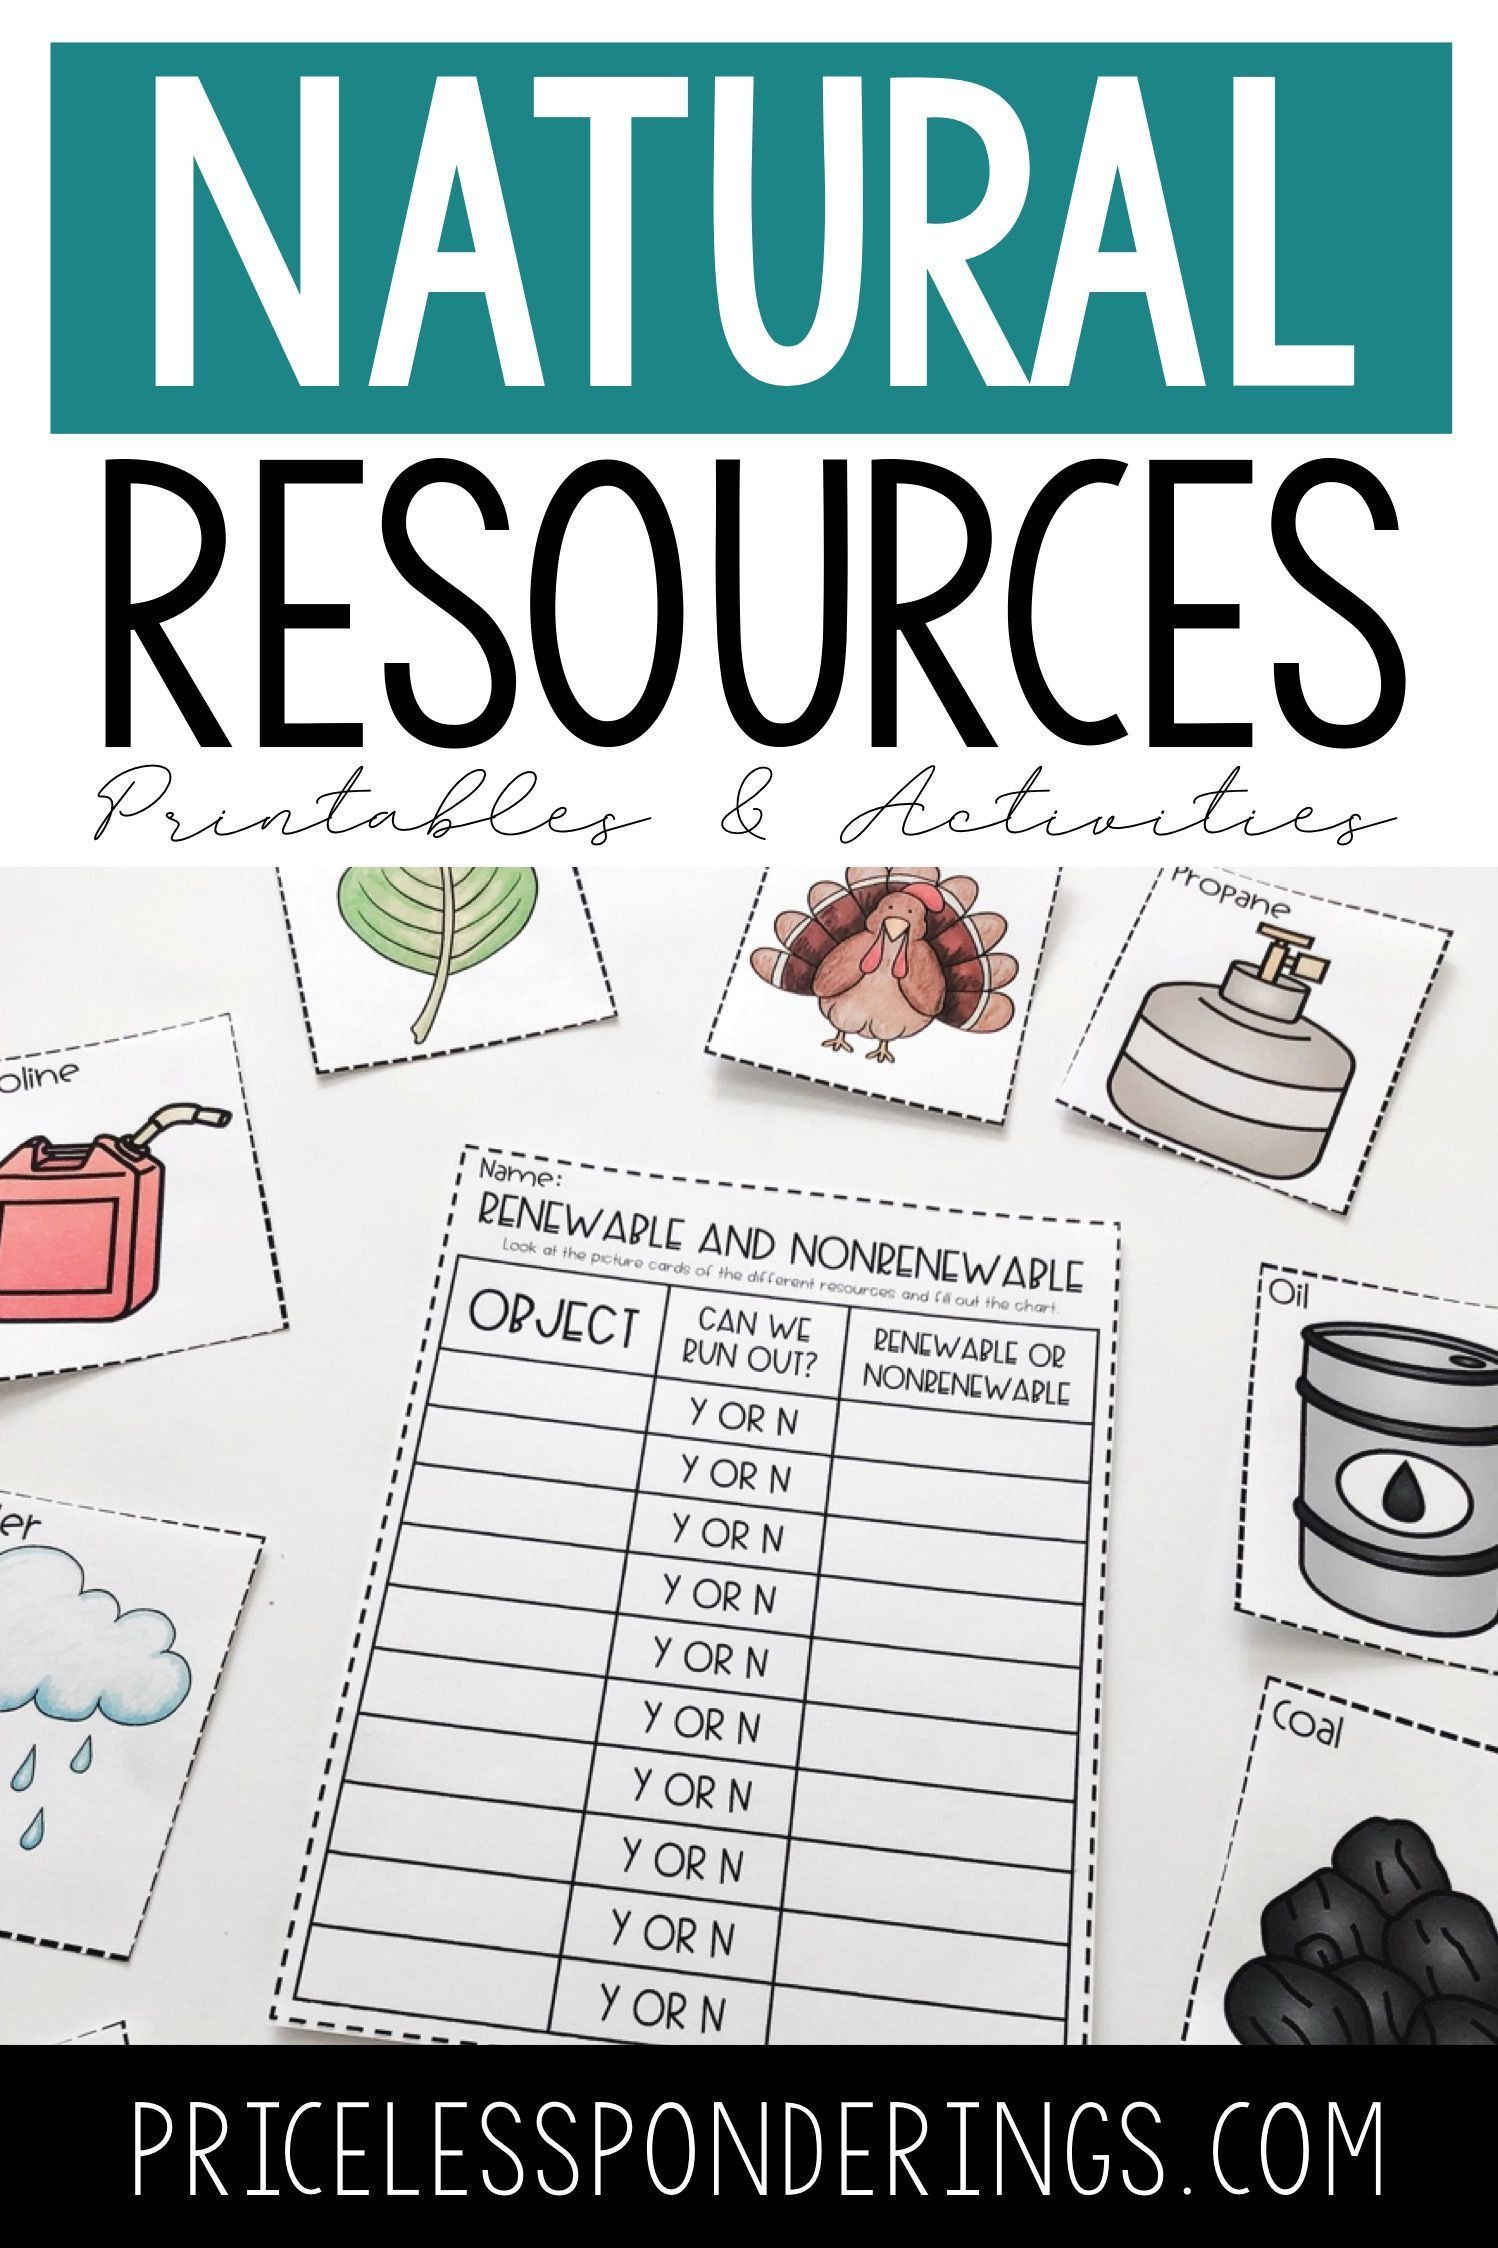 Natural Resources Worksheets 3rd Grade In